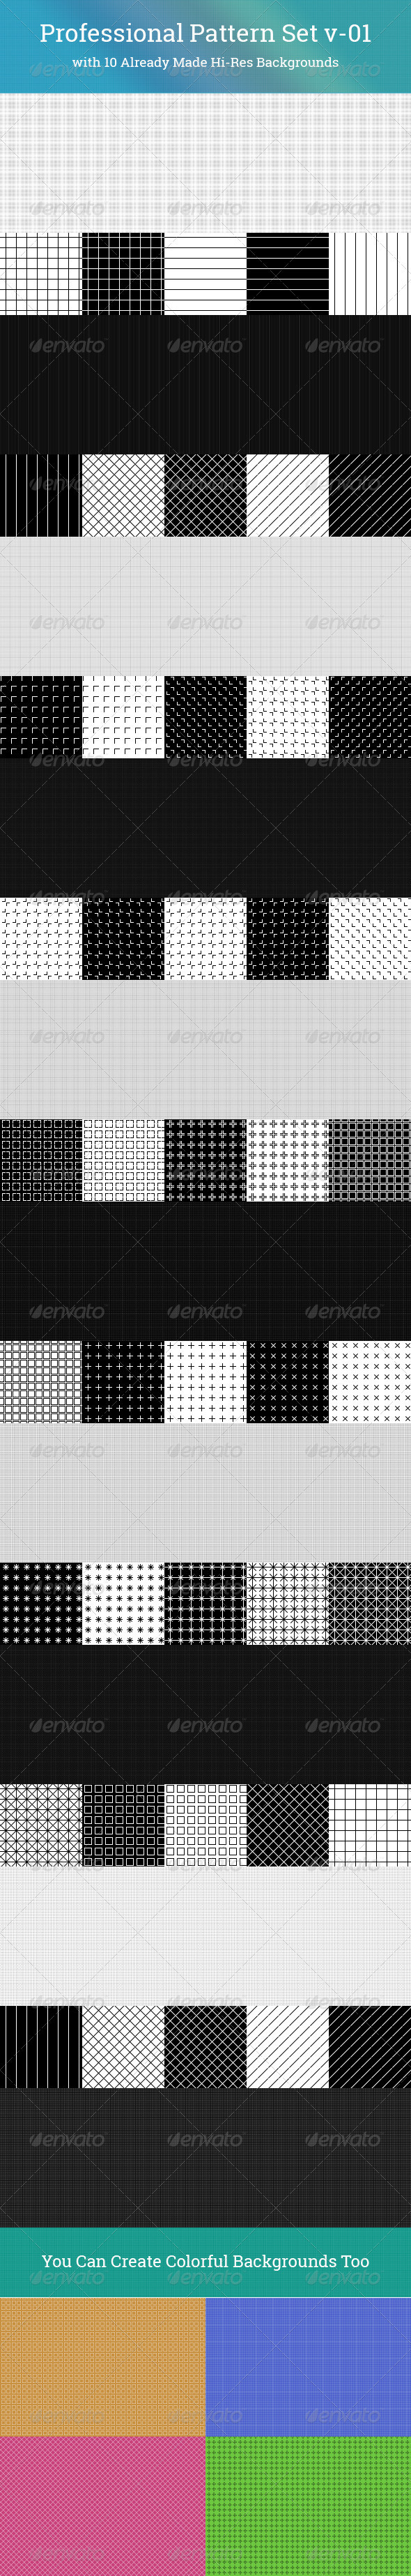 GraphicRiver Professional Pattern Set v-01 6115976